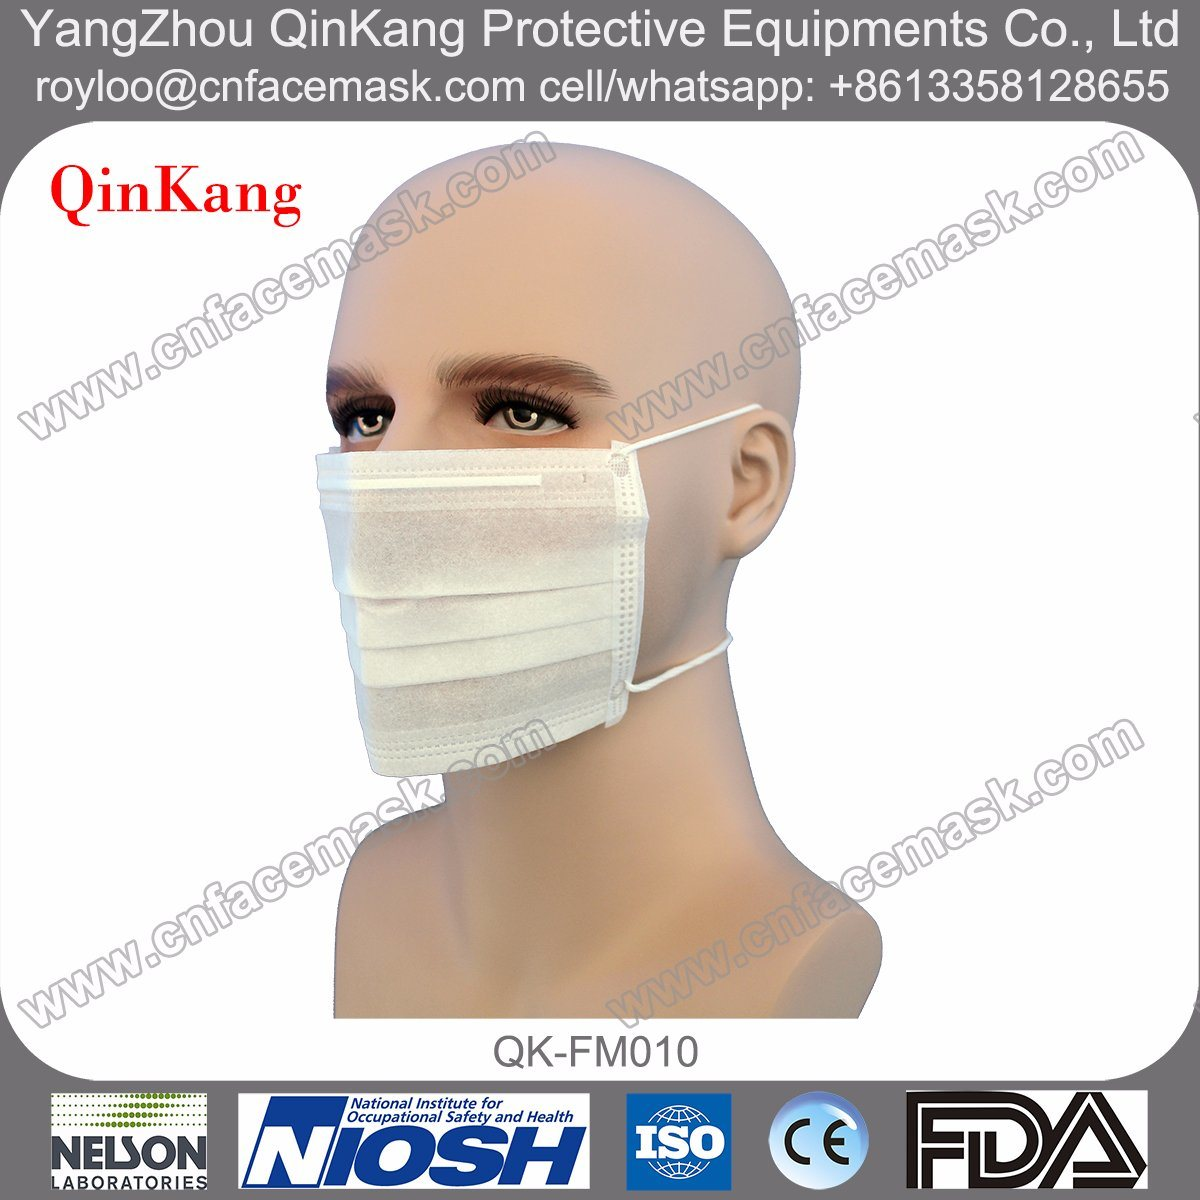 Disposable Non Woven Surgical Face Mask 3ply with Headloop